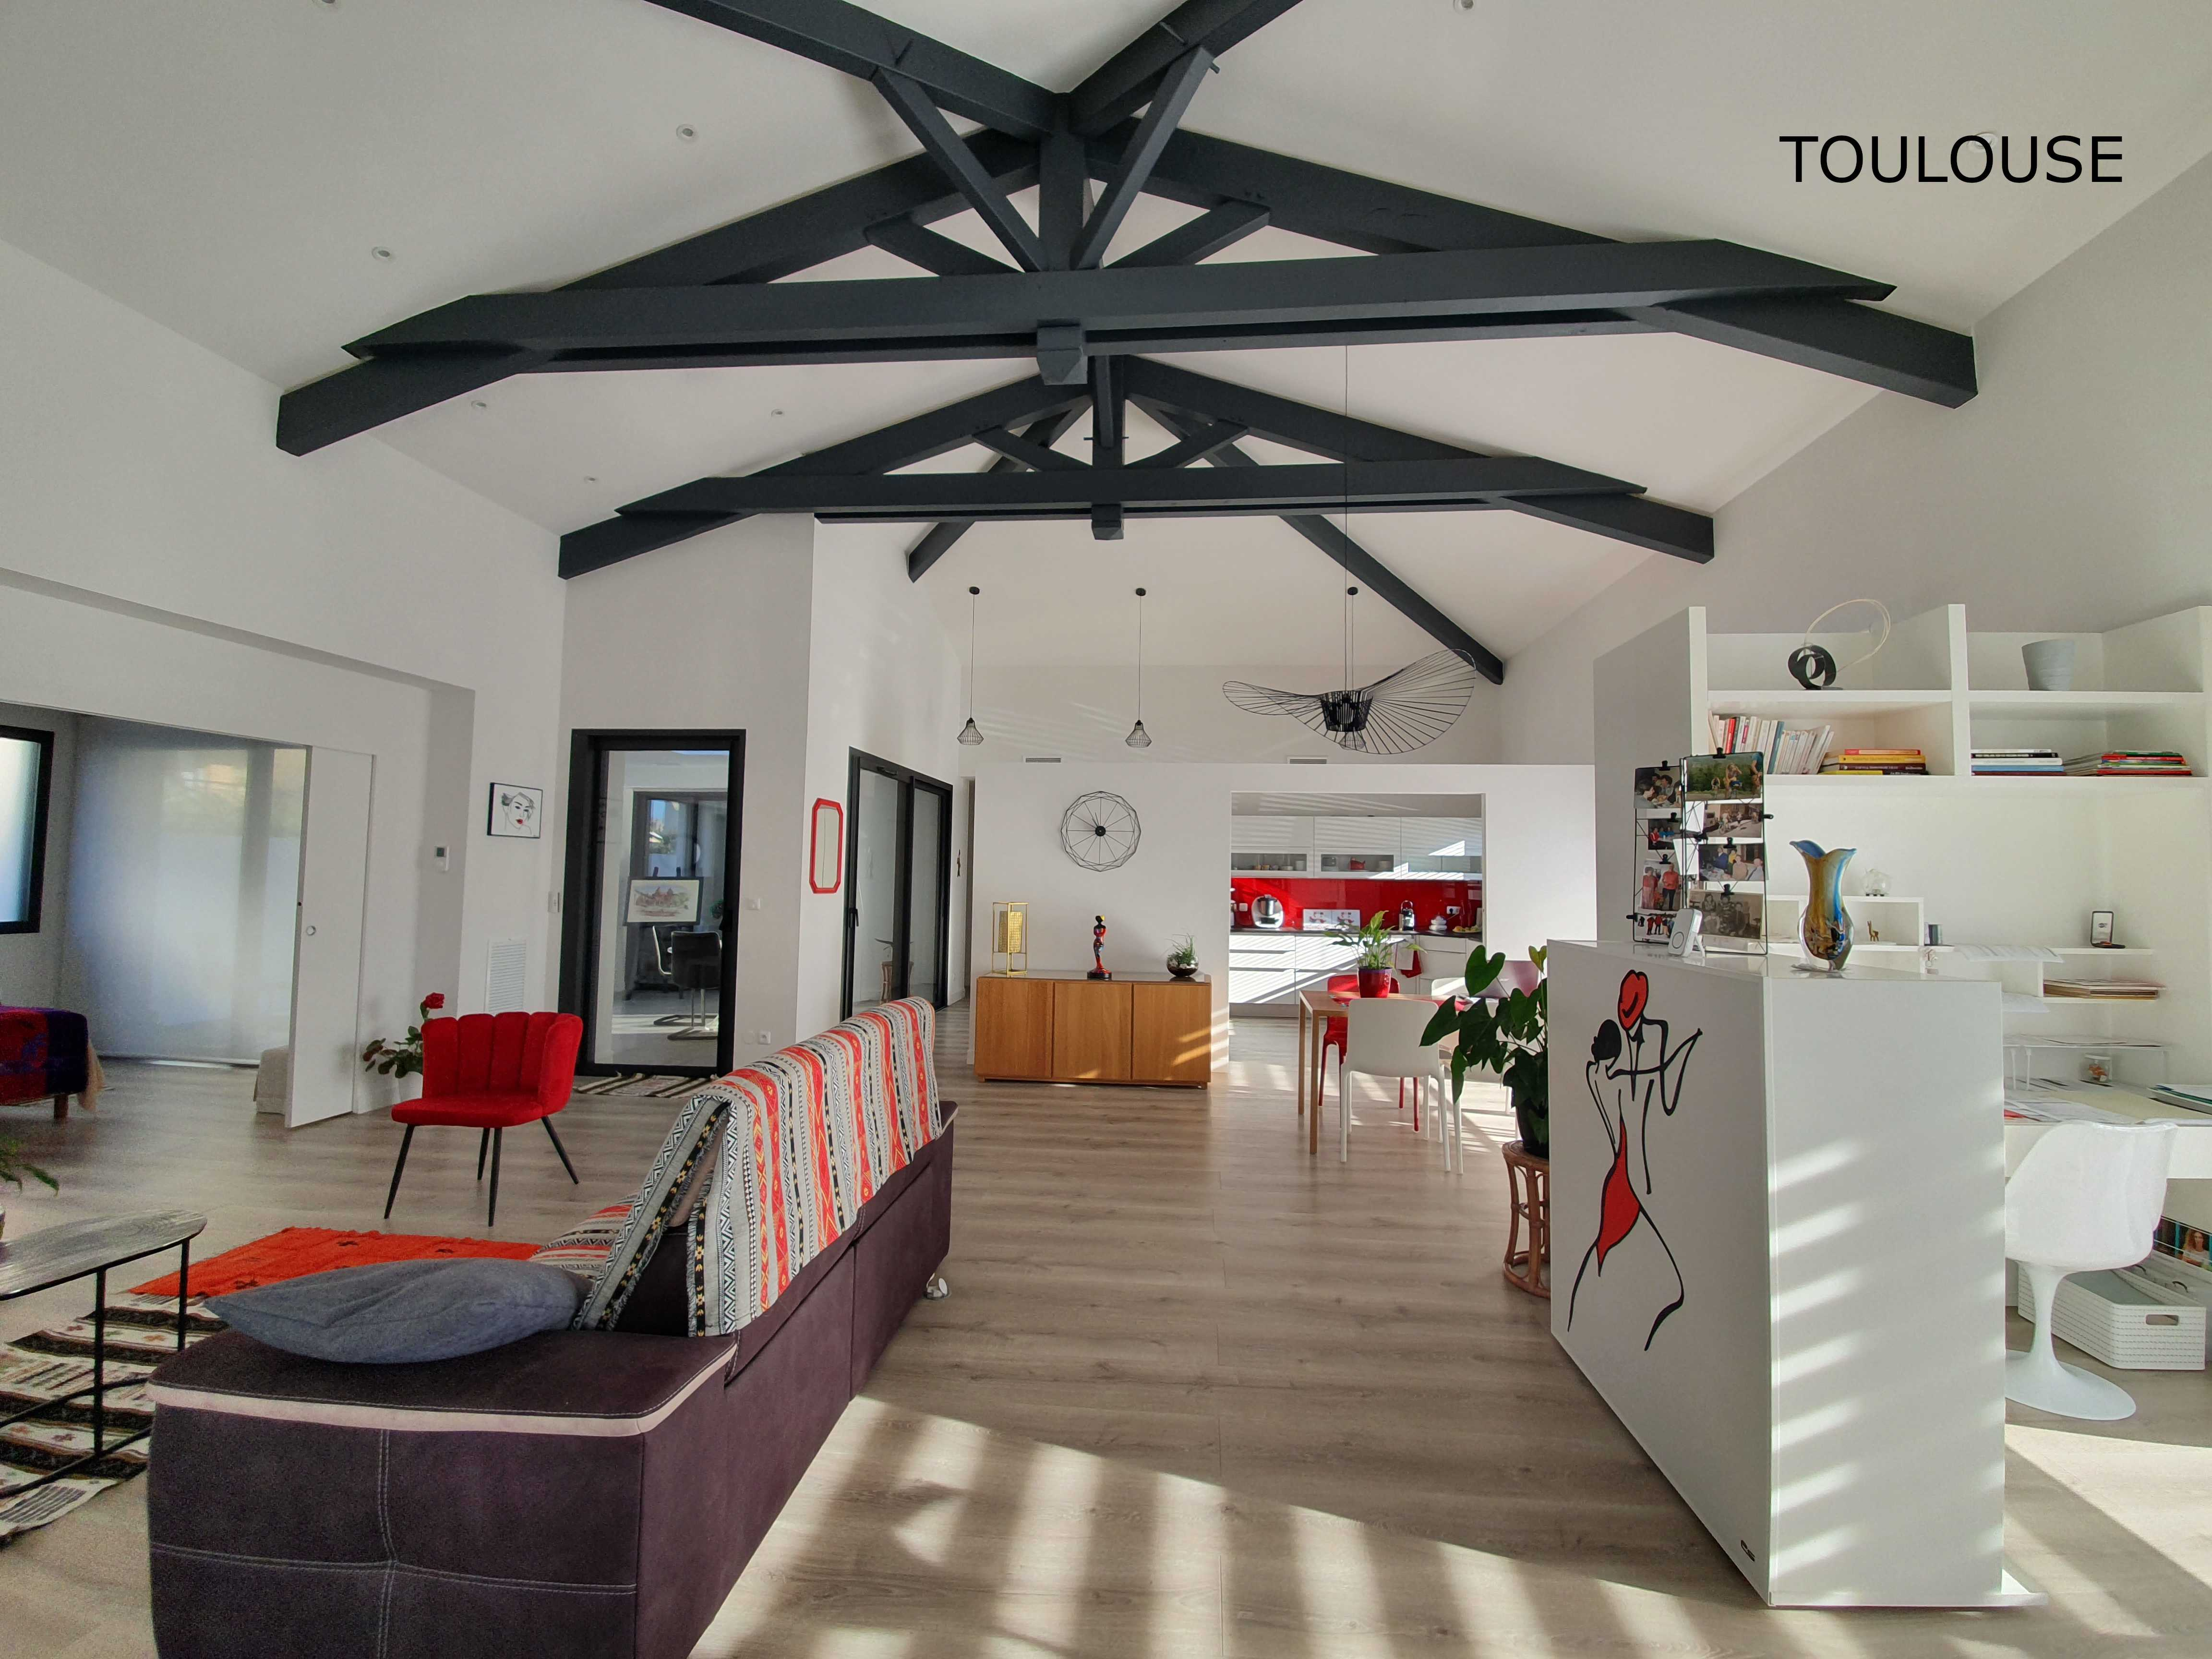 toulouse mocelin interieur 2